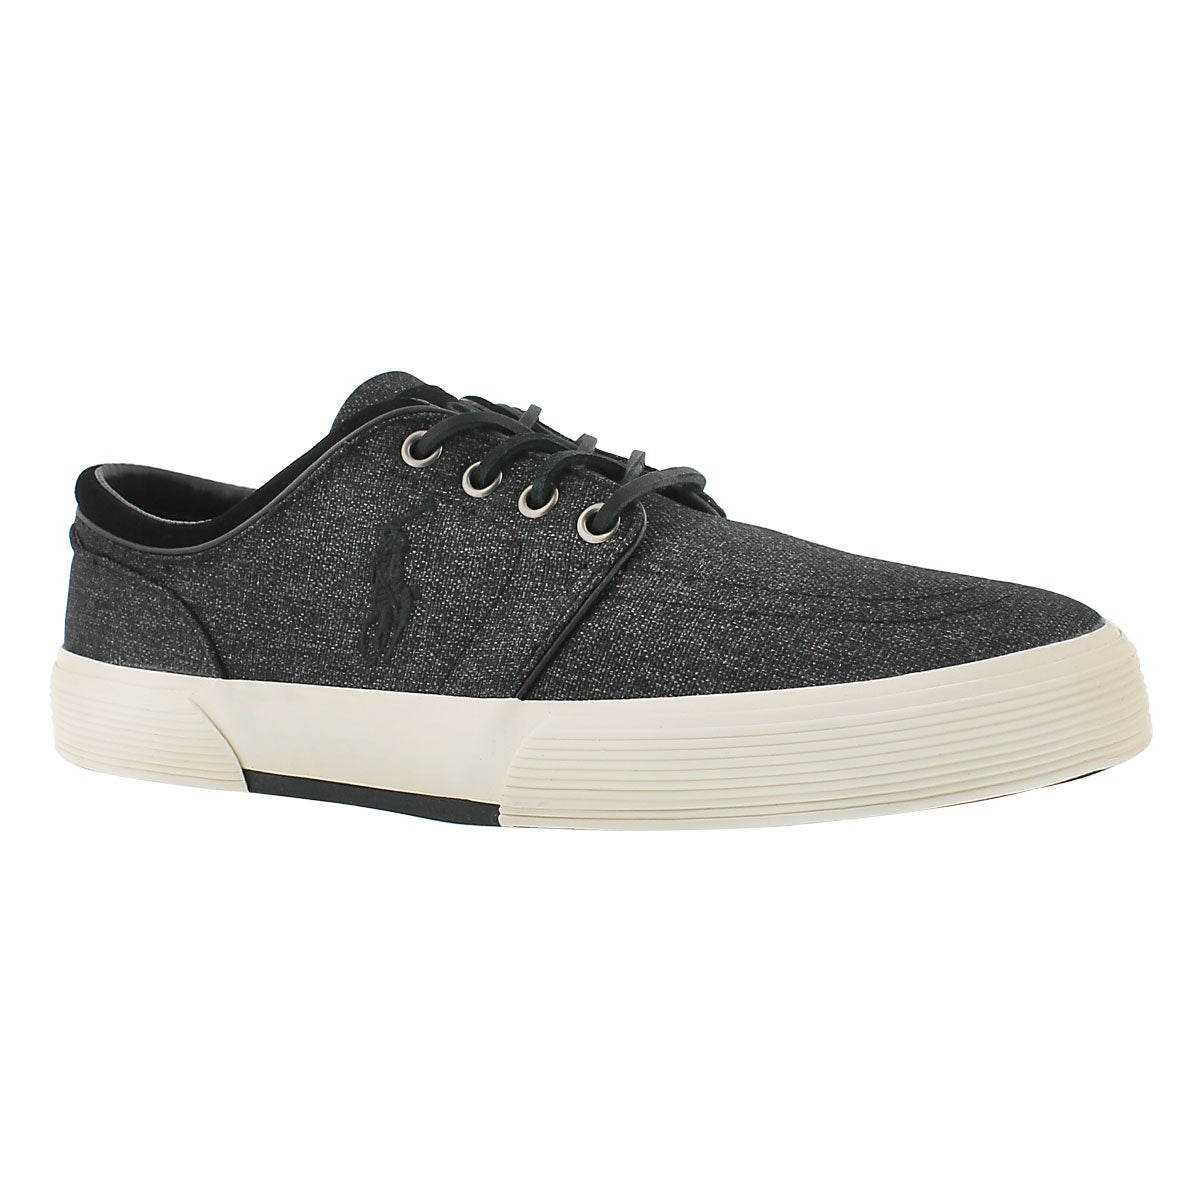 Men's FAXON LOW black nylon sneakers